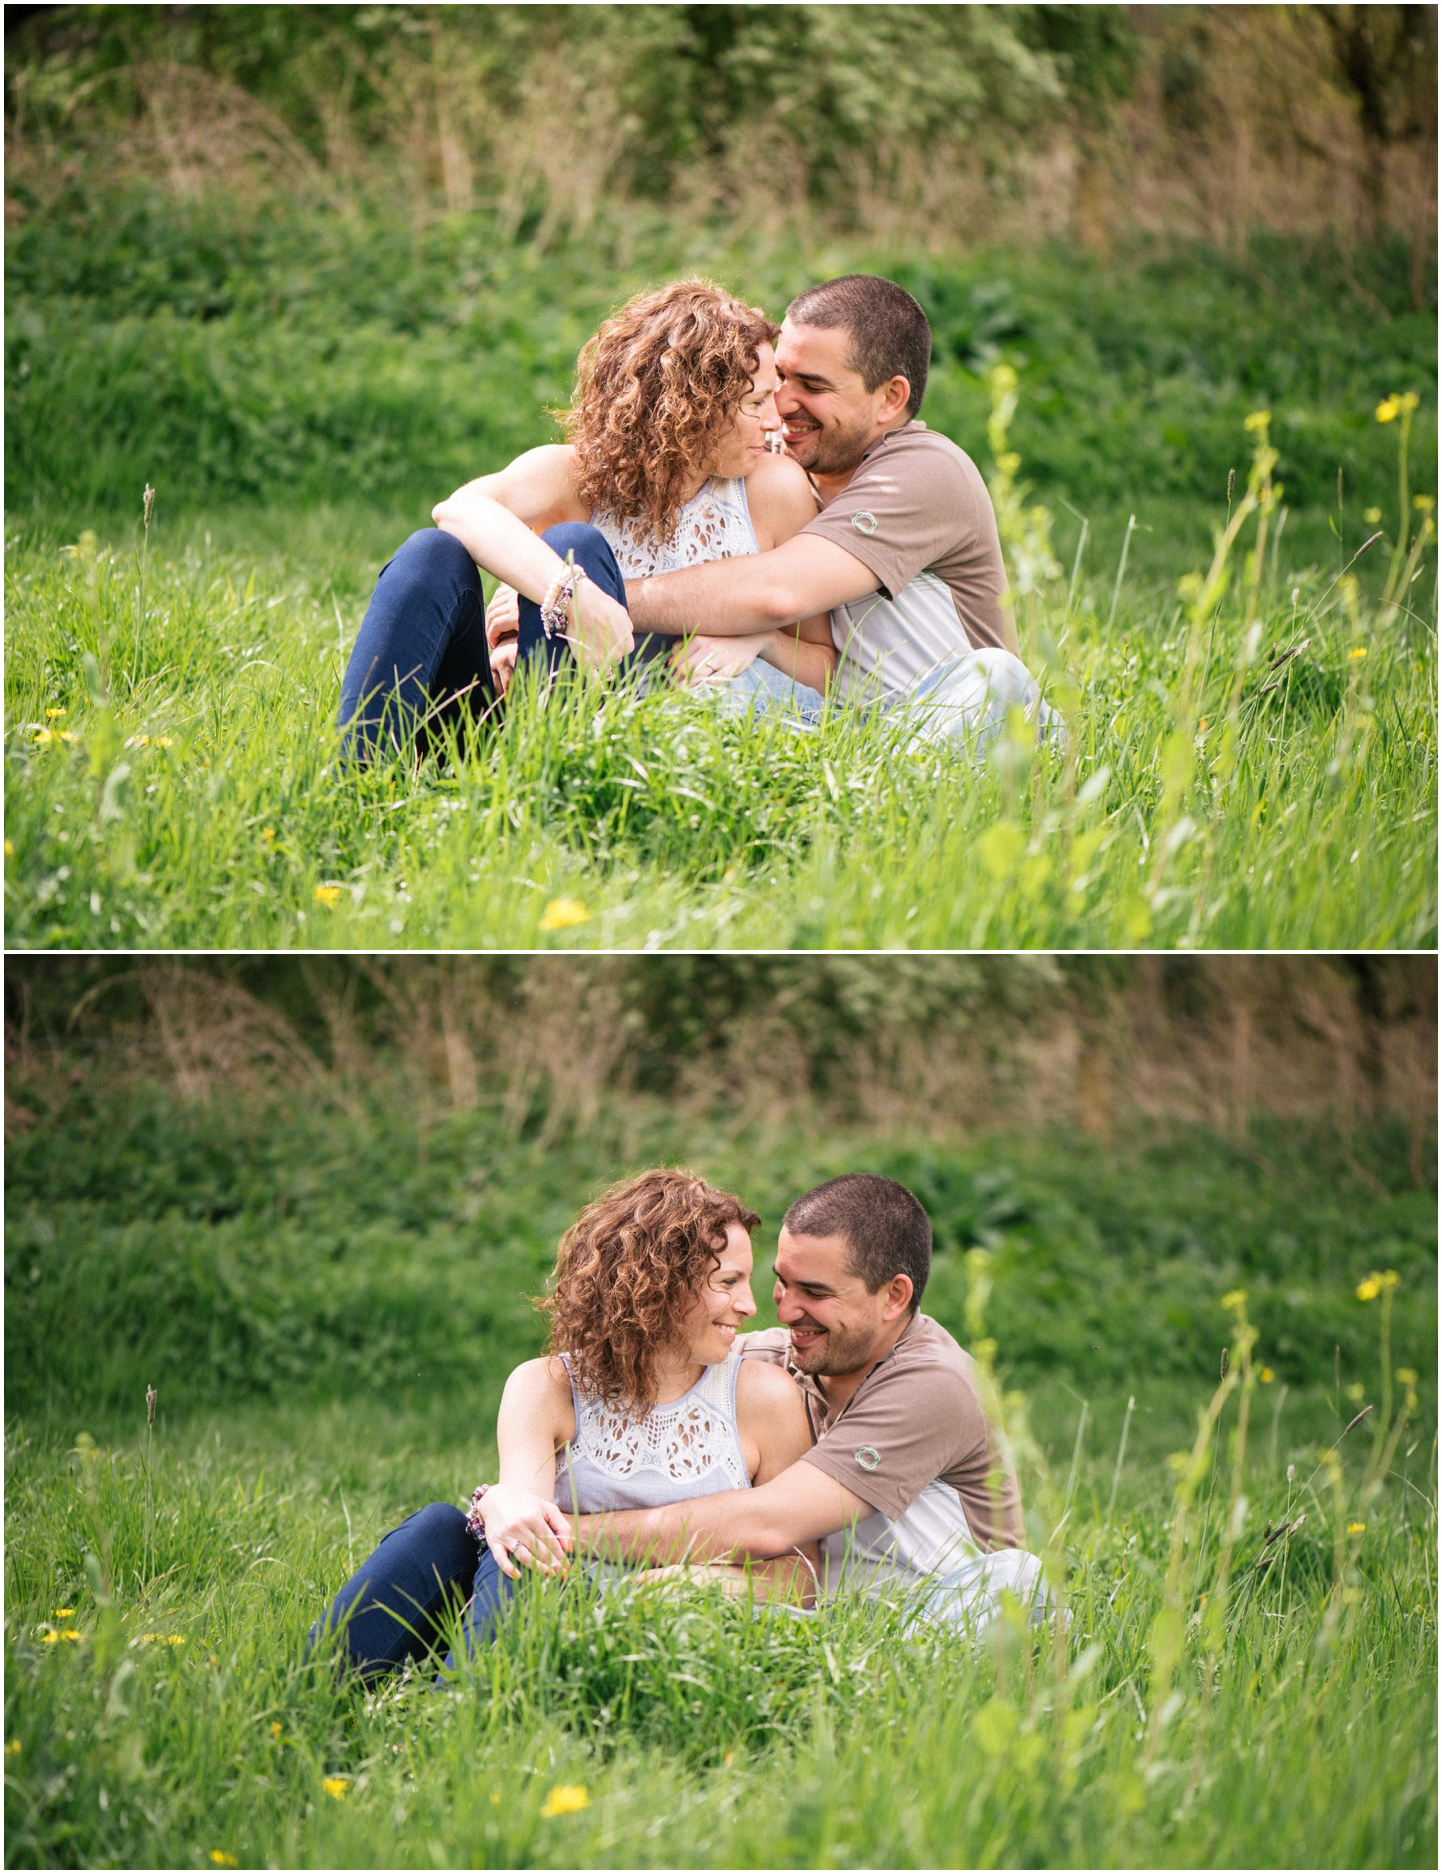 Wedding Photography, Engagement Shoot, Lisa Carpenter Photography, River Severn, Worcester, Curradine Barns